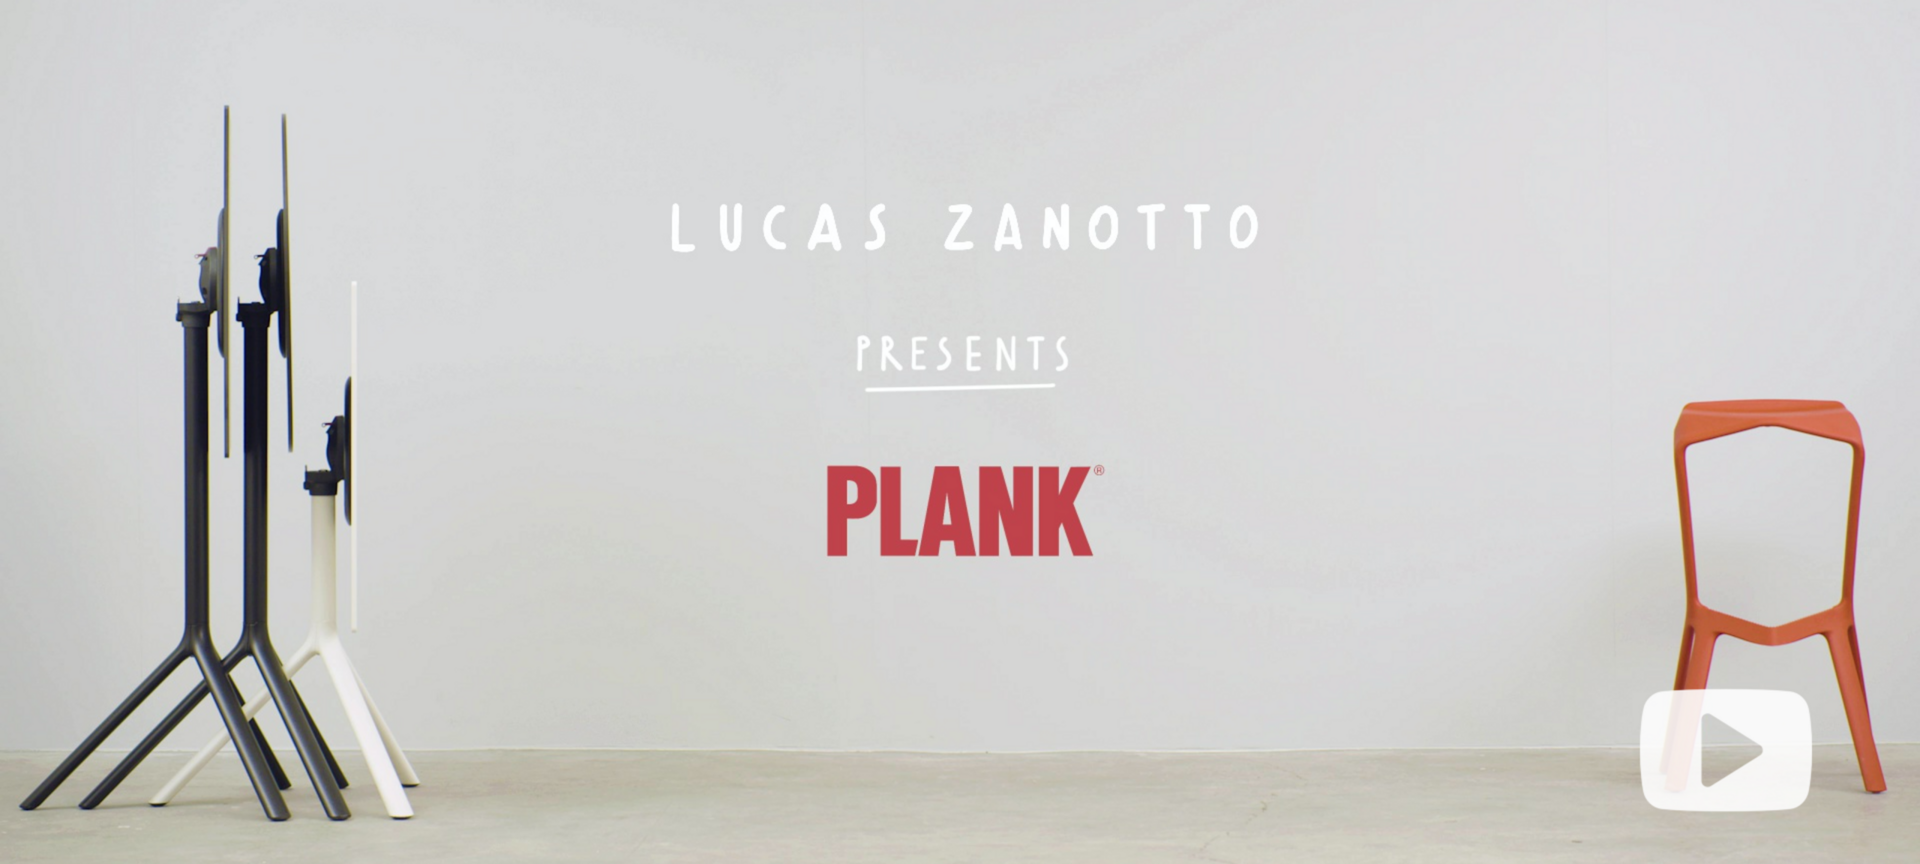 LUCAS ZANOTTO presents PLANK